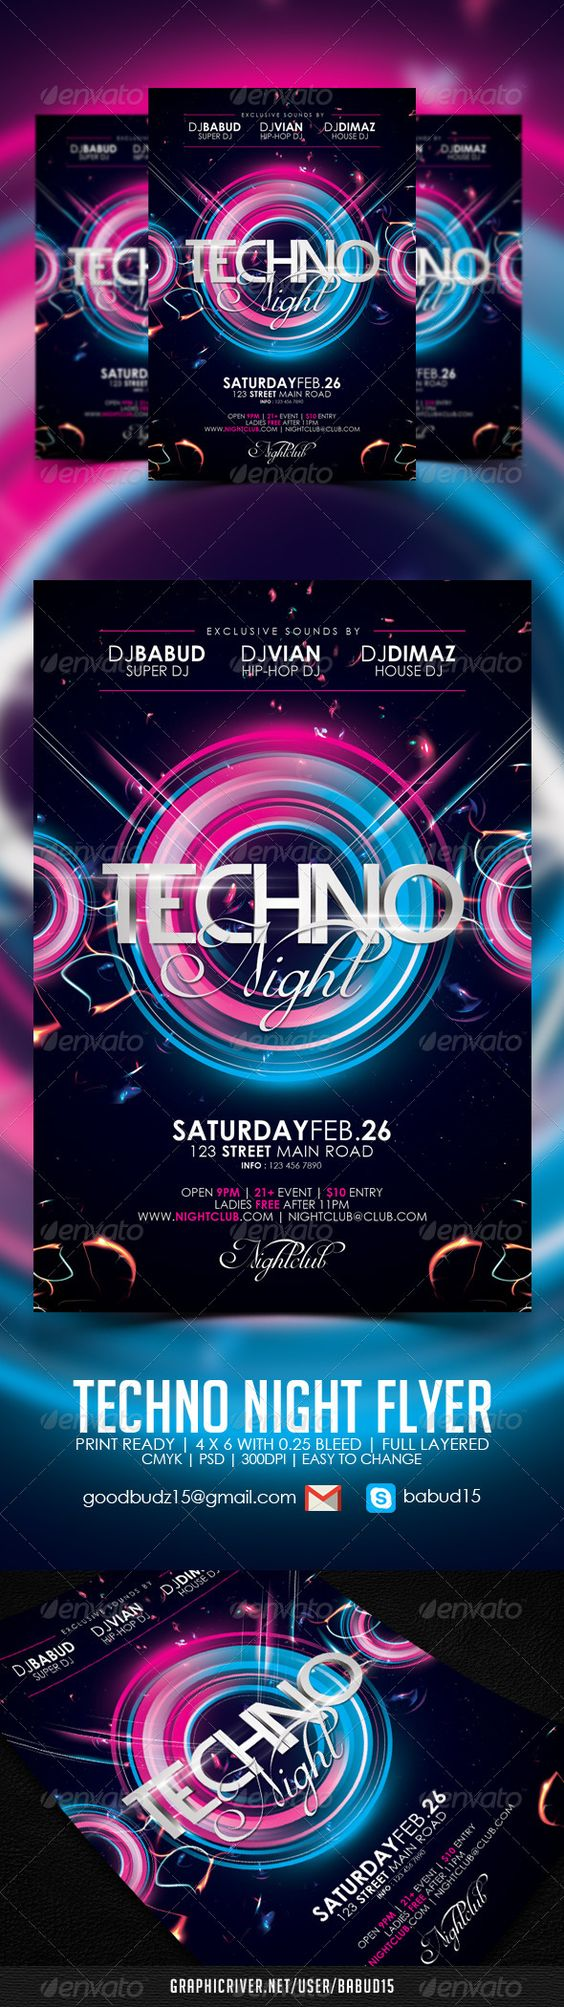 techno night flyer template texts nightclub and galaxies event flyers